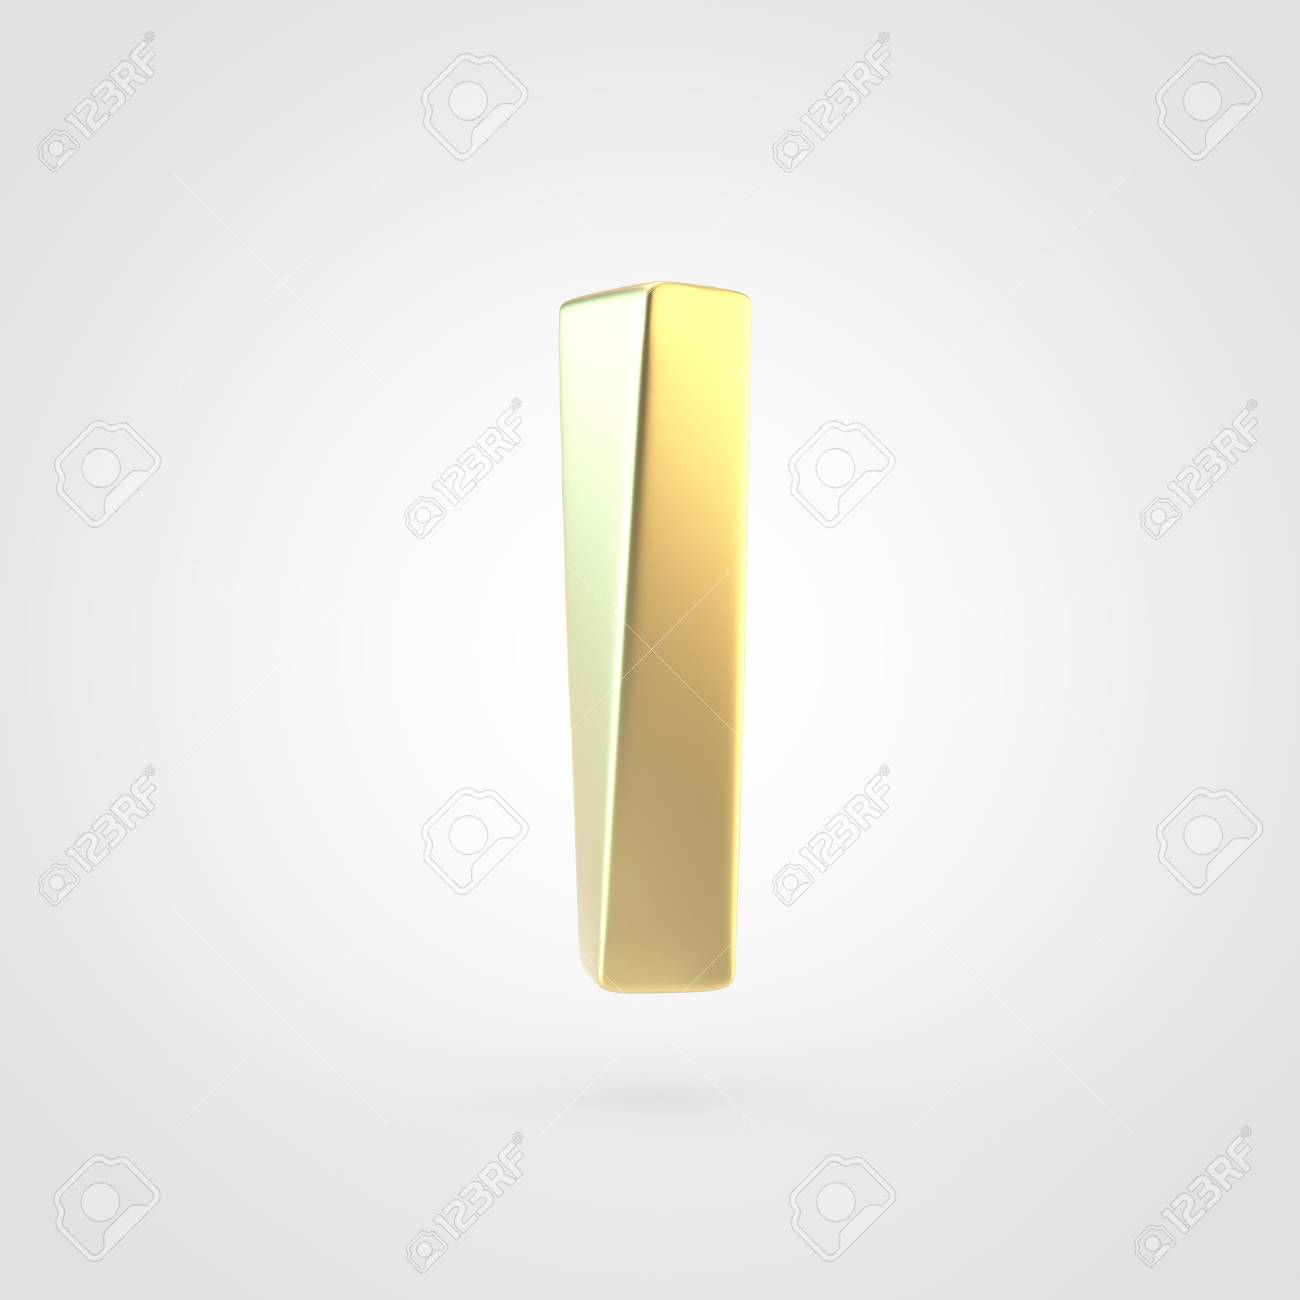 Golden Letter L Lowercase 3D Rendering Of Matted Golden Font 1300x1300